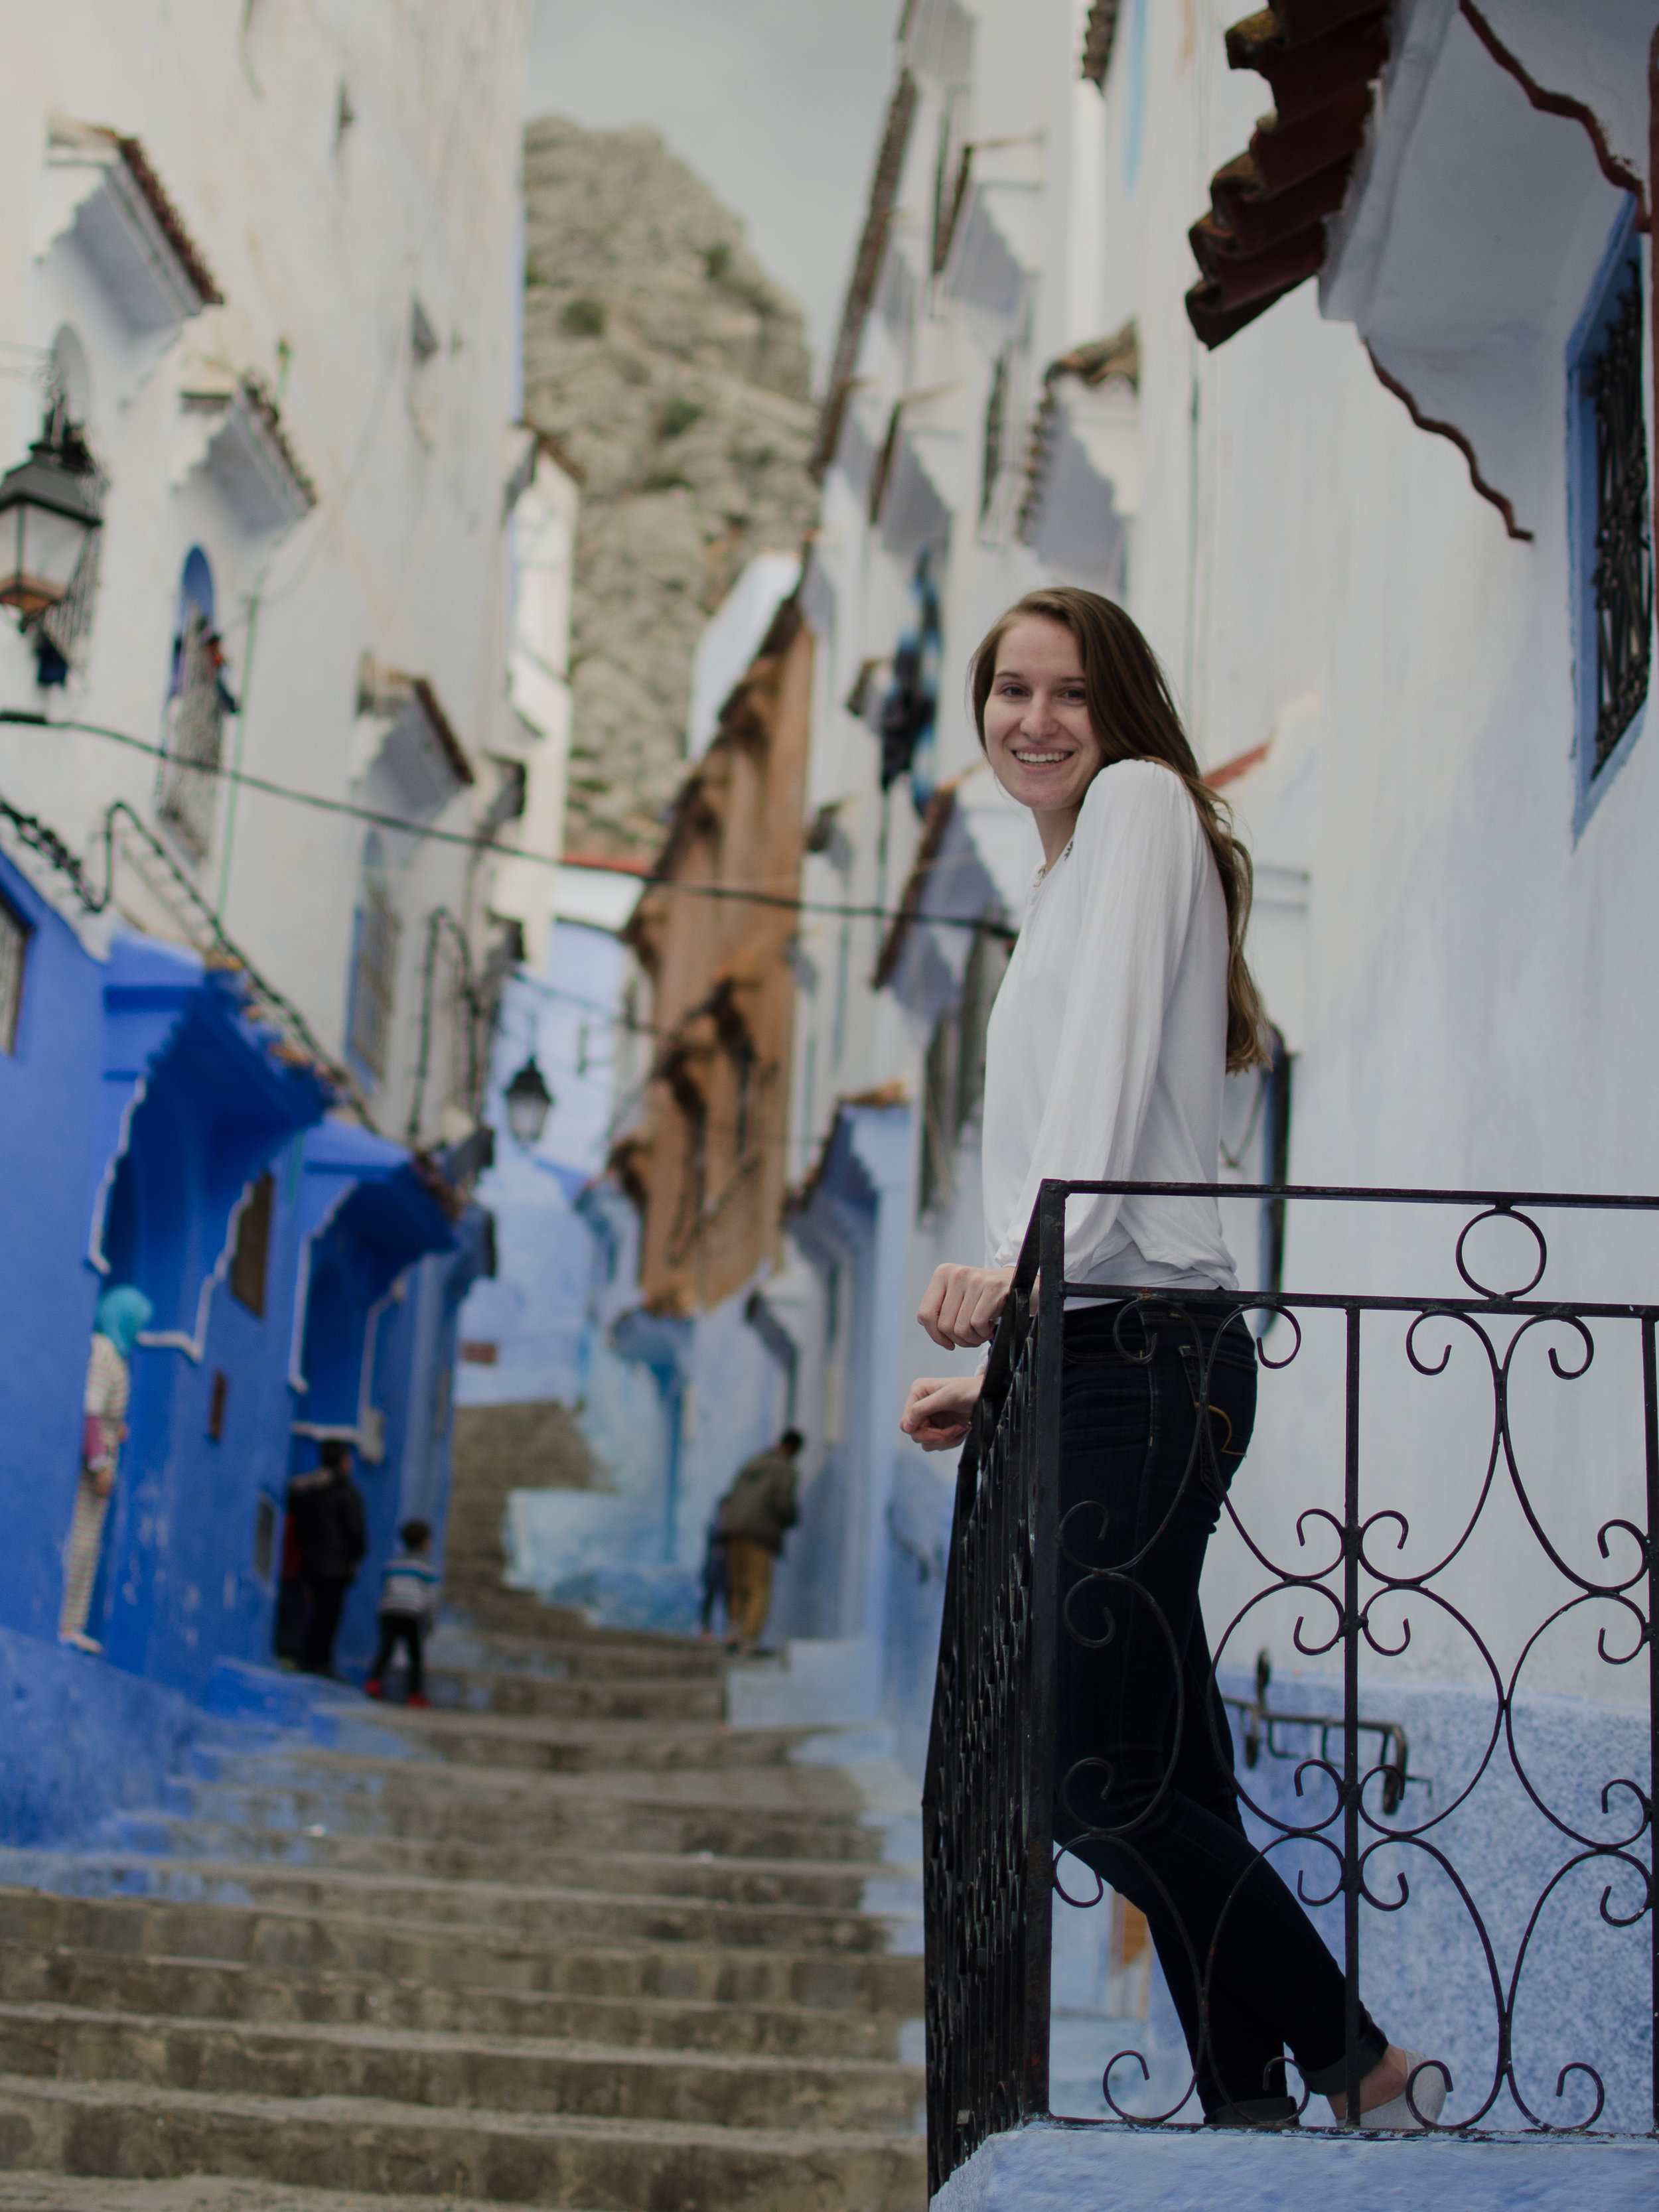 Enjoying the sun in Morocco's blue city, Chefchaouen